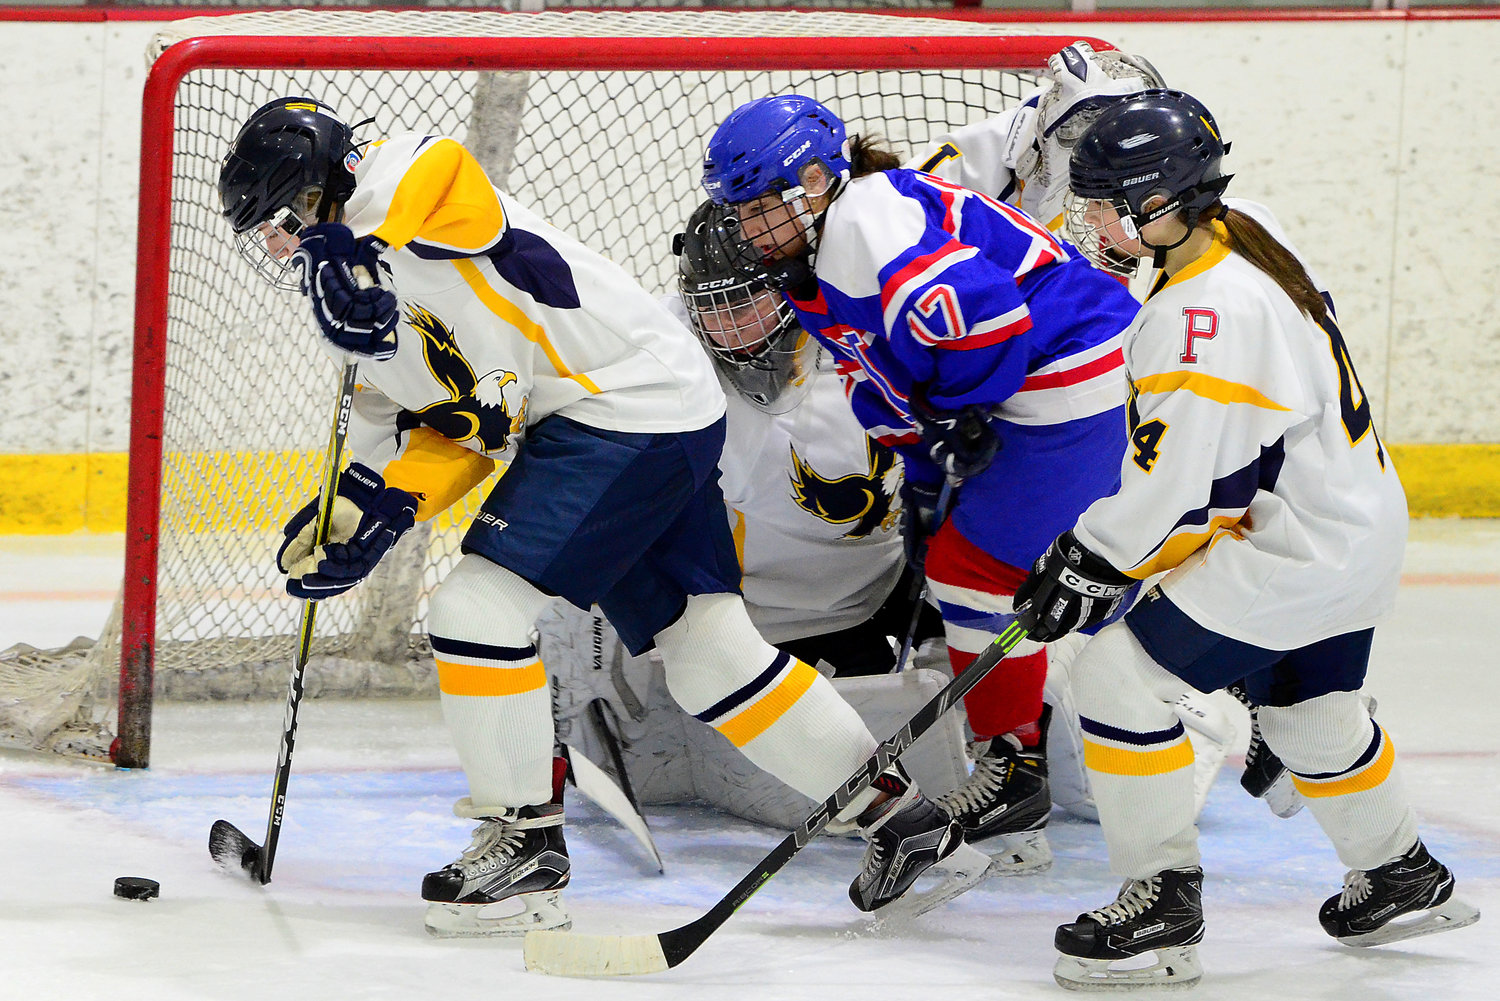 Senior defenseman Ella Hanley skates the puck out of the goal mouth with goaltender Ellee Kopecky and forward Marissa Levreault (right).